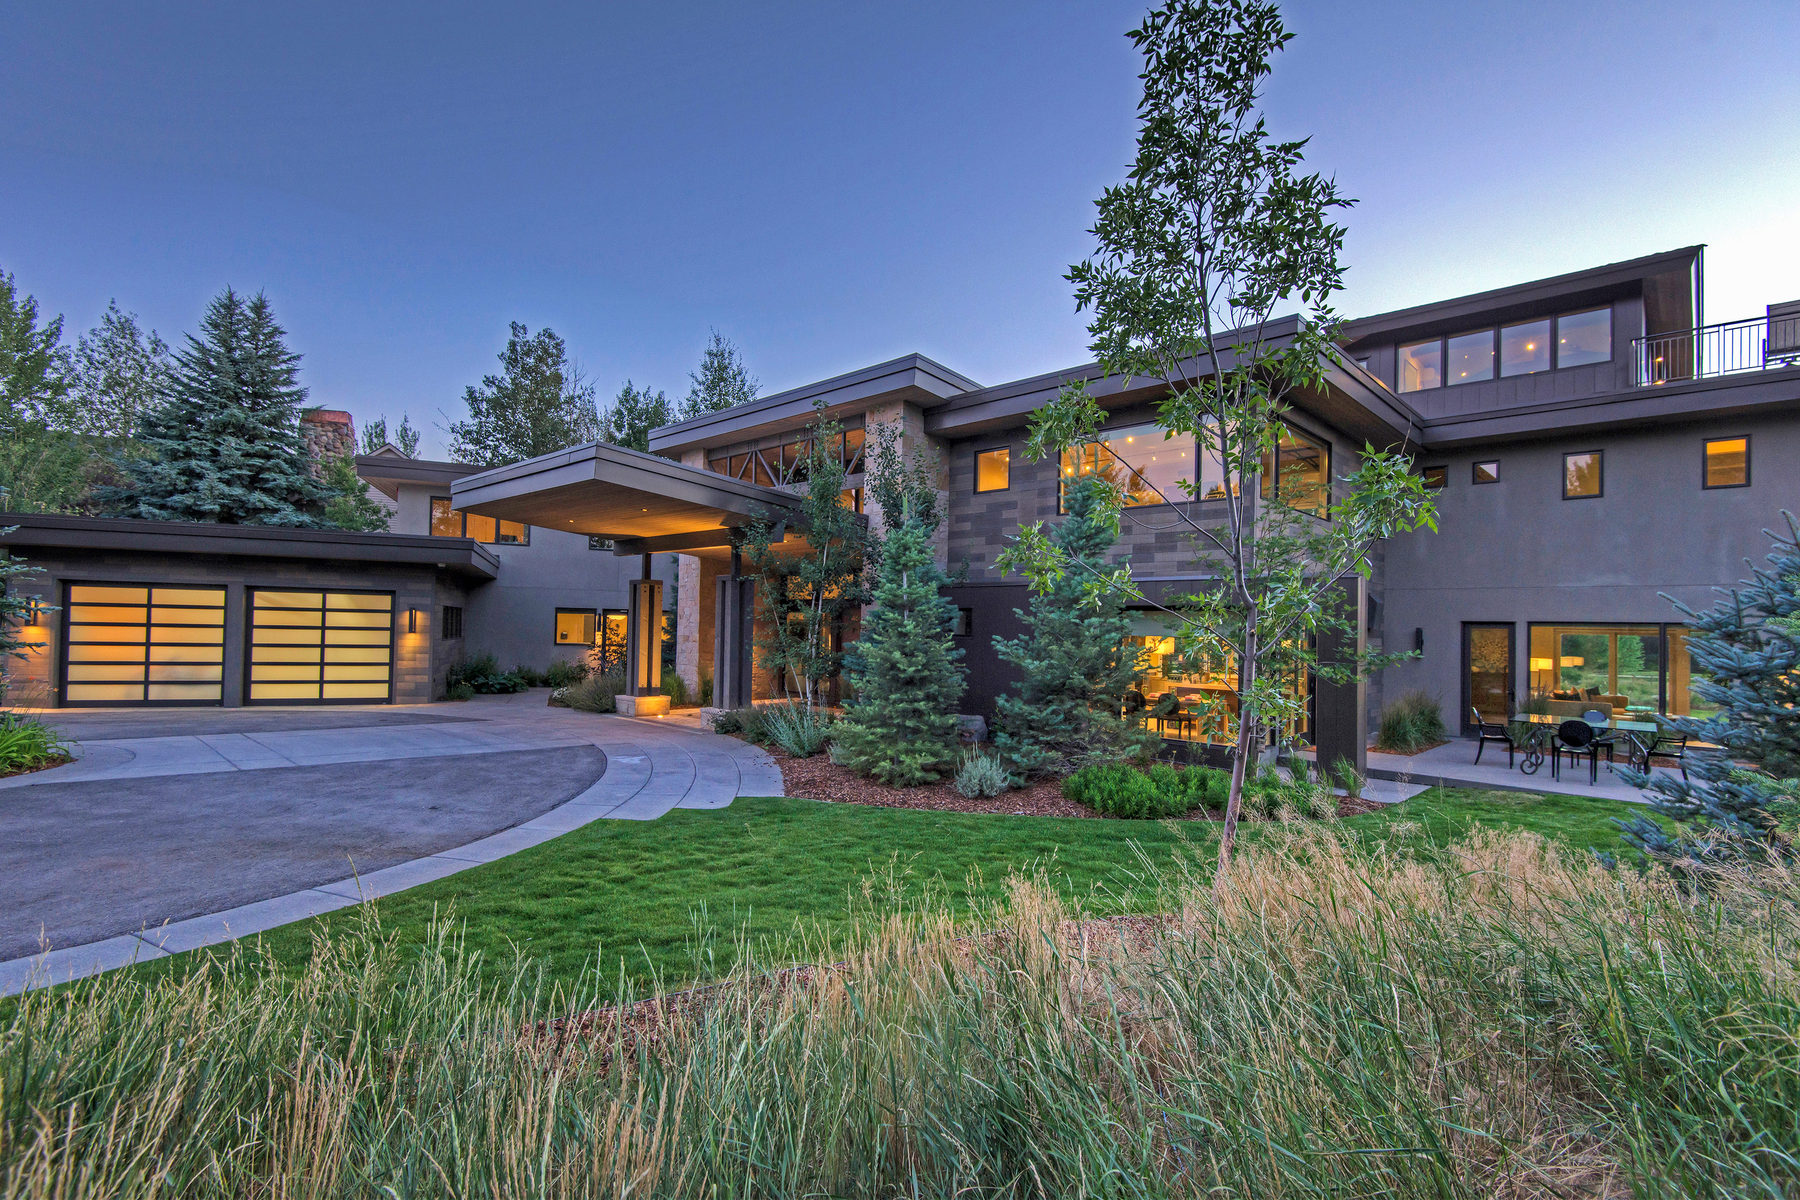 独户住宅 为 销售 在 Exquisite Contemporary Estate 1334 Lucky John Dr Park City, 犹他州 84060 美国